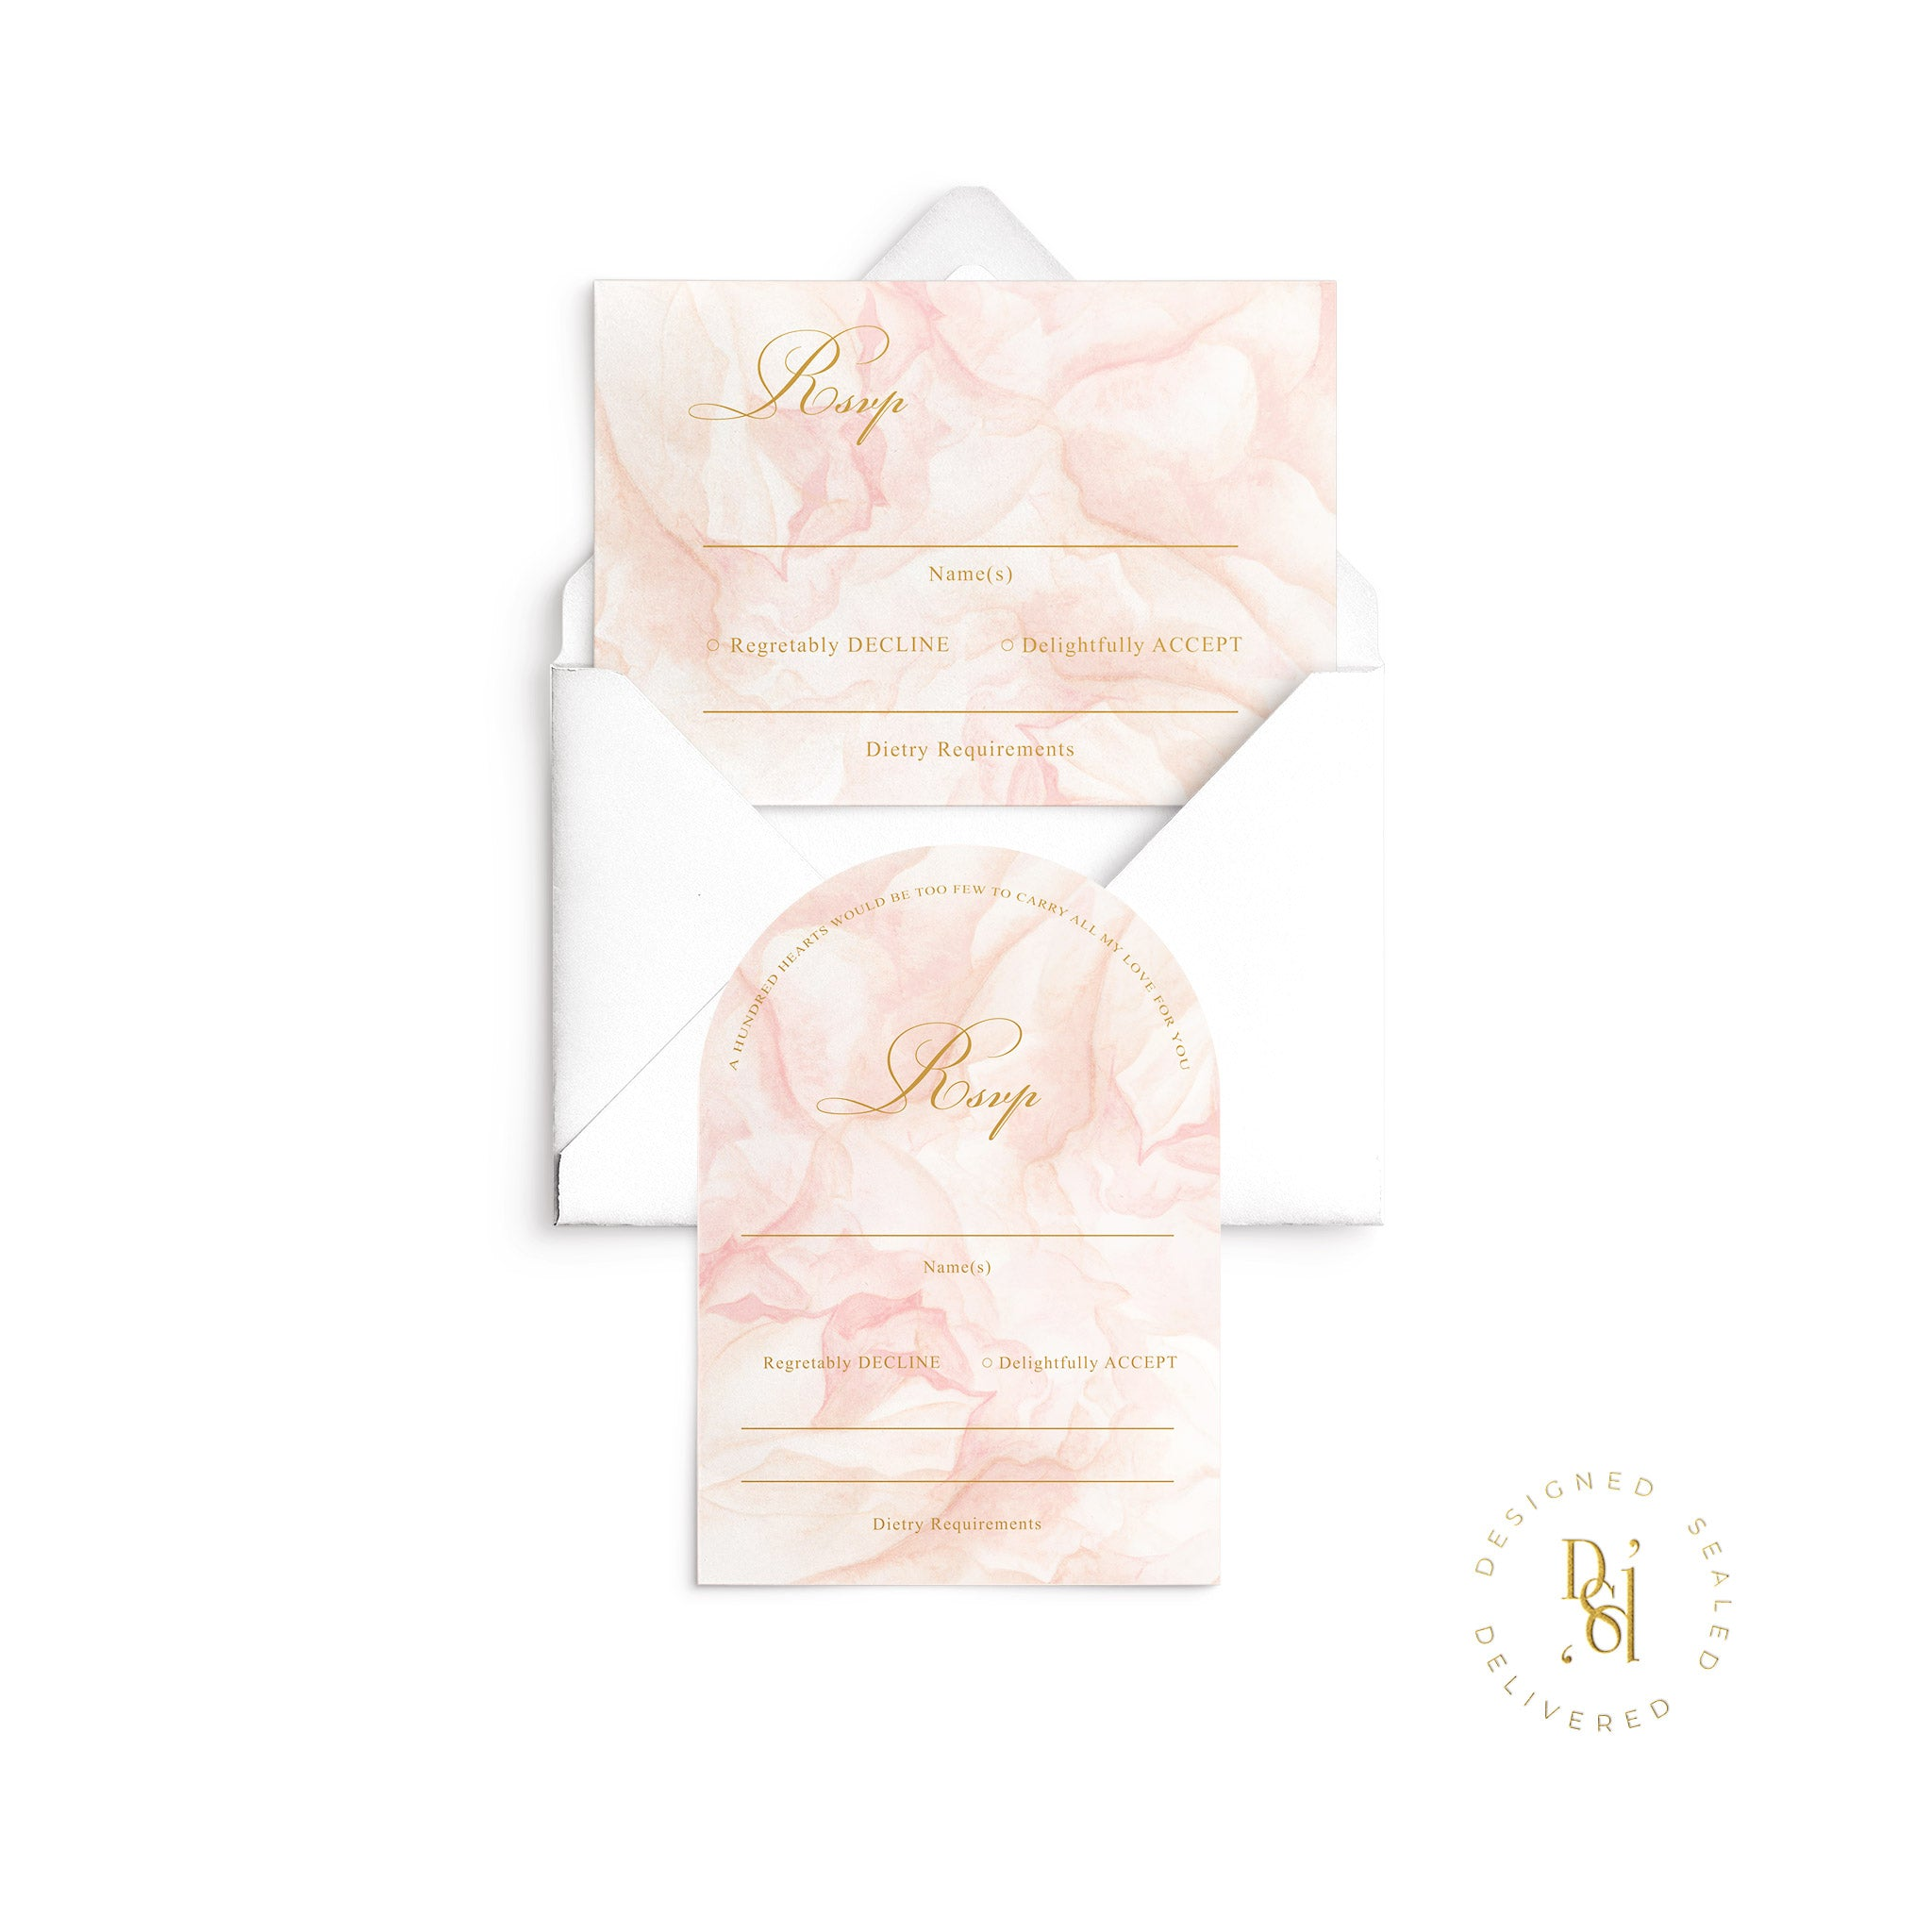 Rosé Collection: Arched and Standard Rectangle Rsvp Card featuring Rosé pattern printed on premium card stock with white envelope